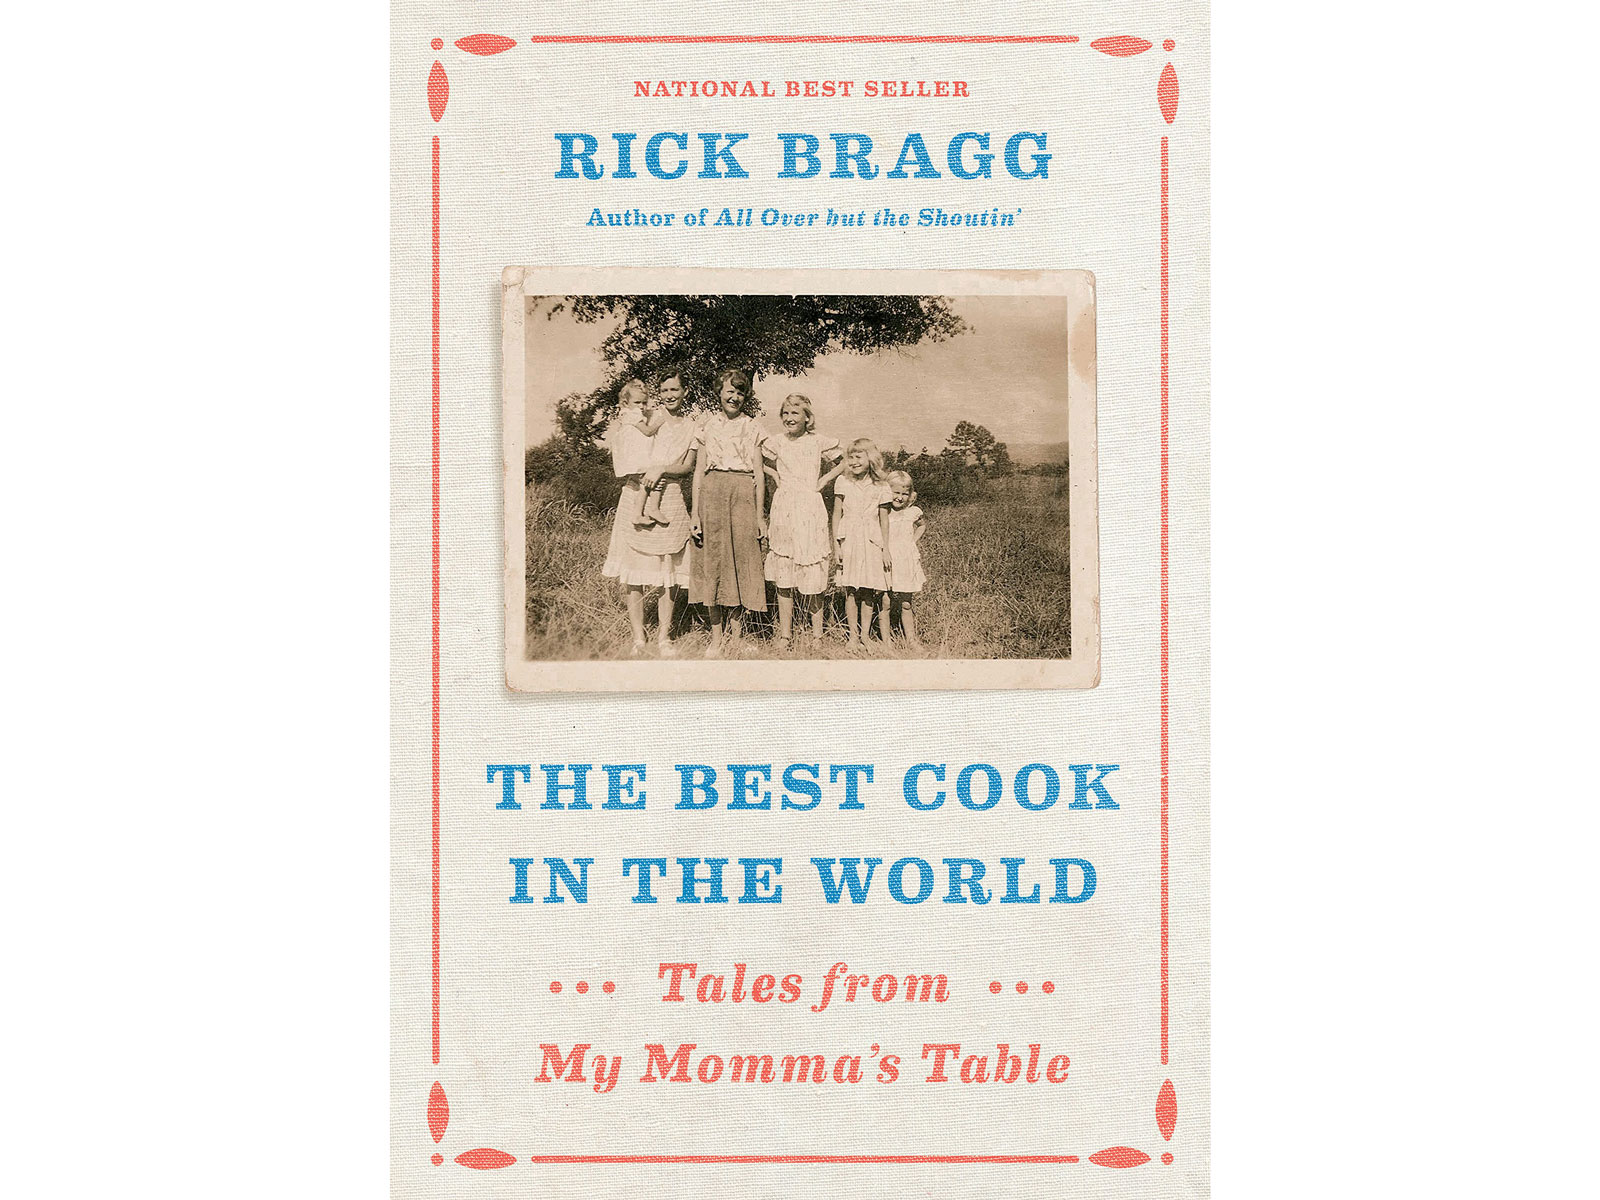 The Best Cook in the World